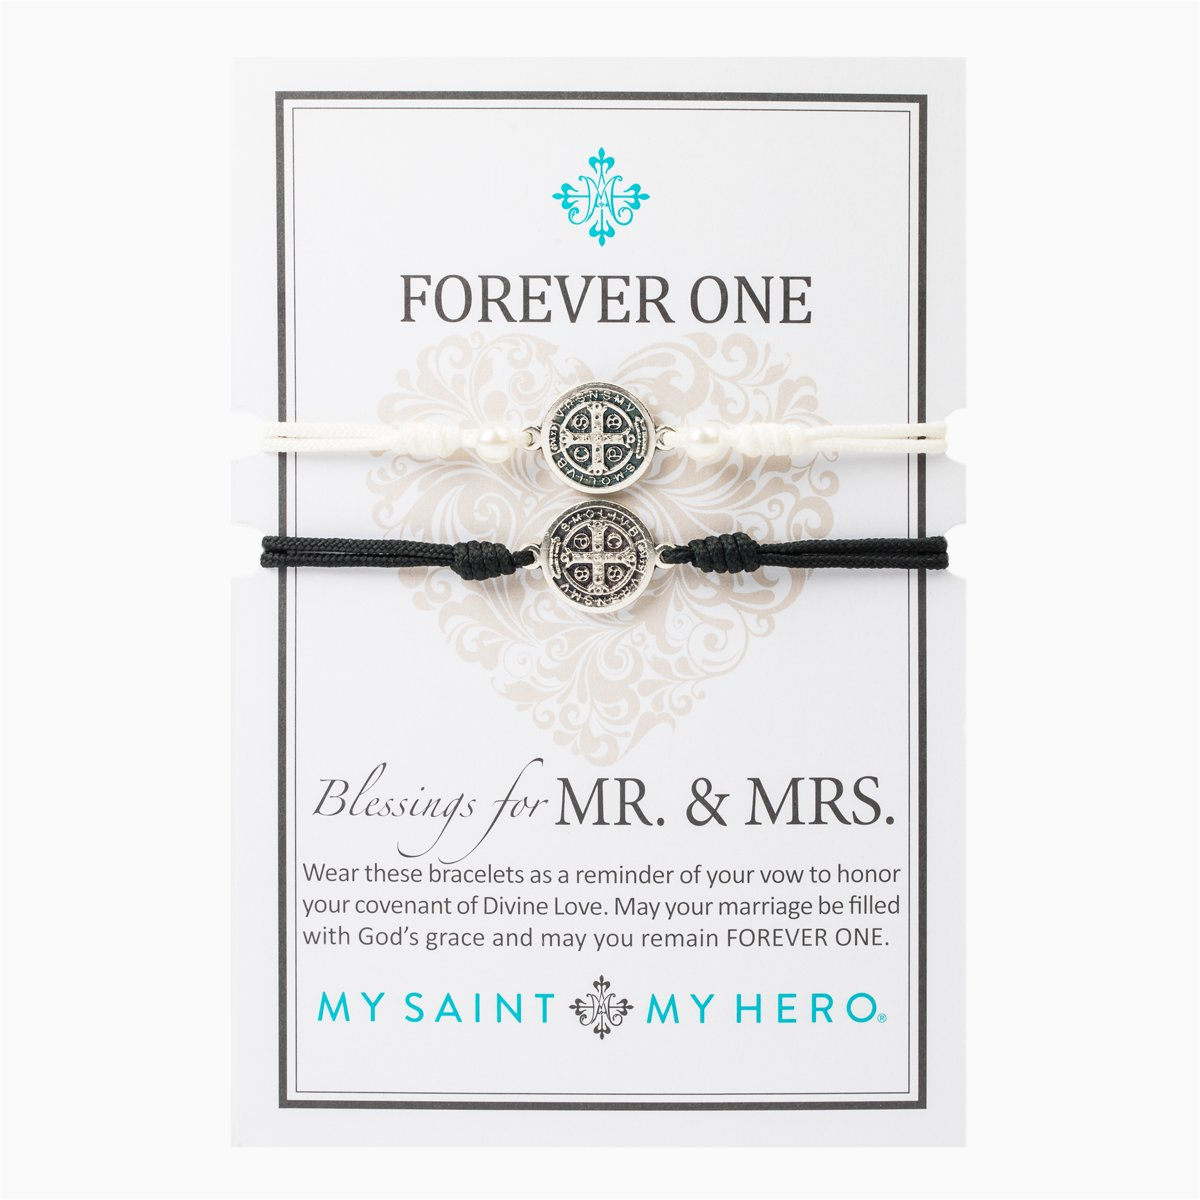 Forever One - Mr. & Mrs. Blessing Bracelets